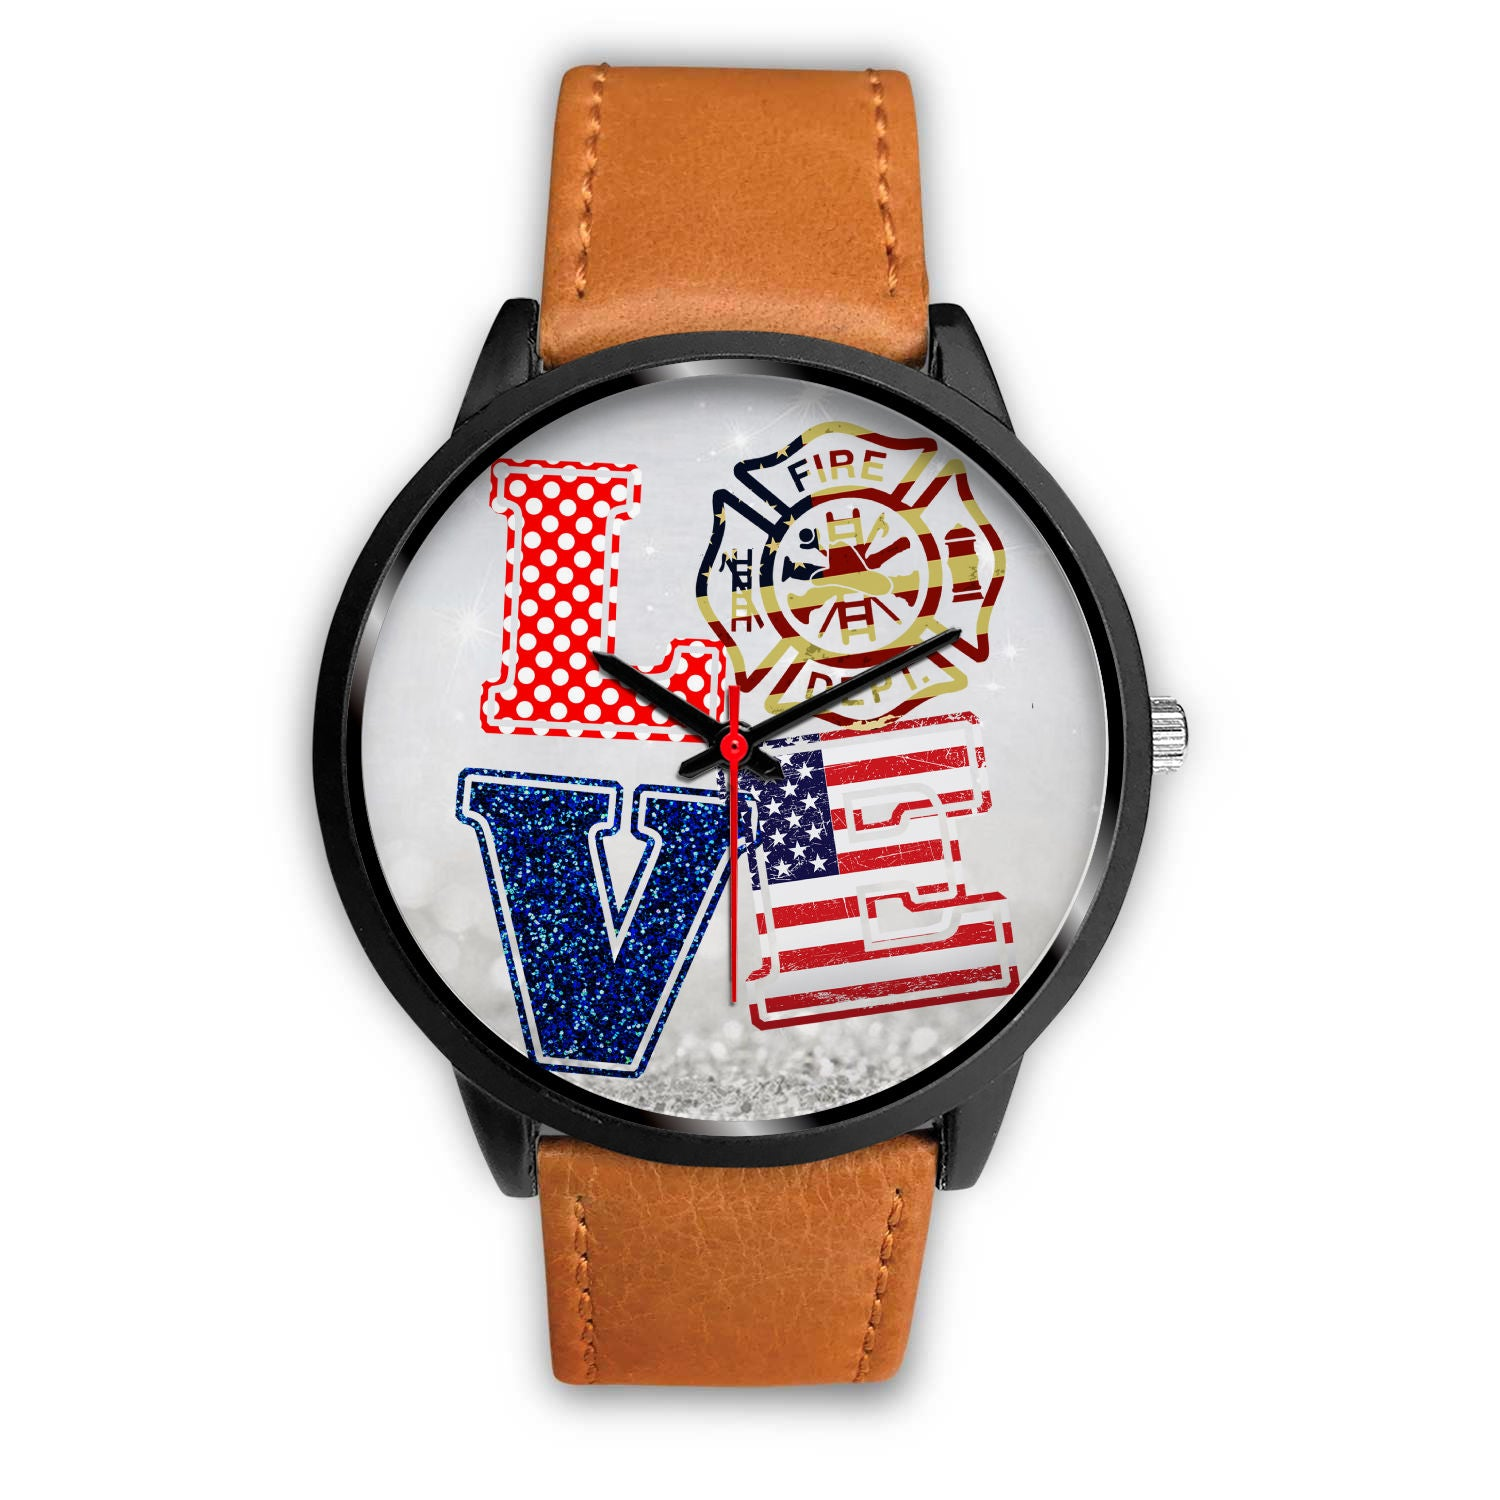 VIRA real genuine leather BAND WATCH FOR FIREFIGHTER LOVERS